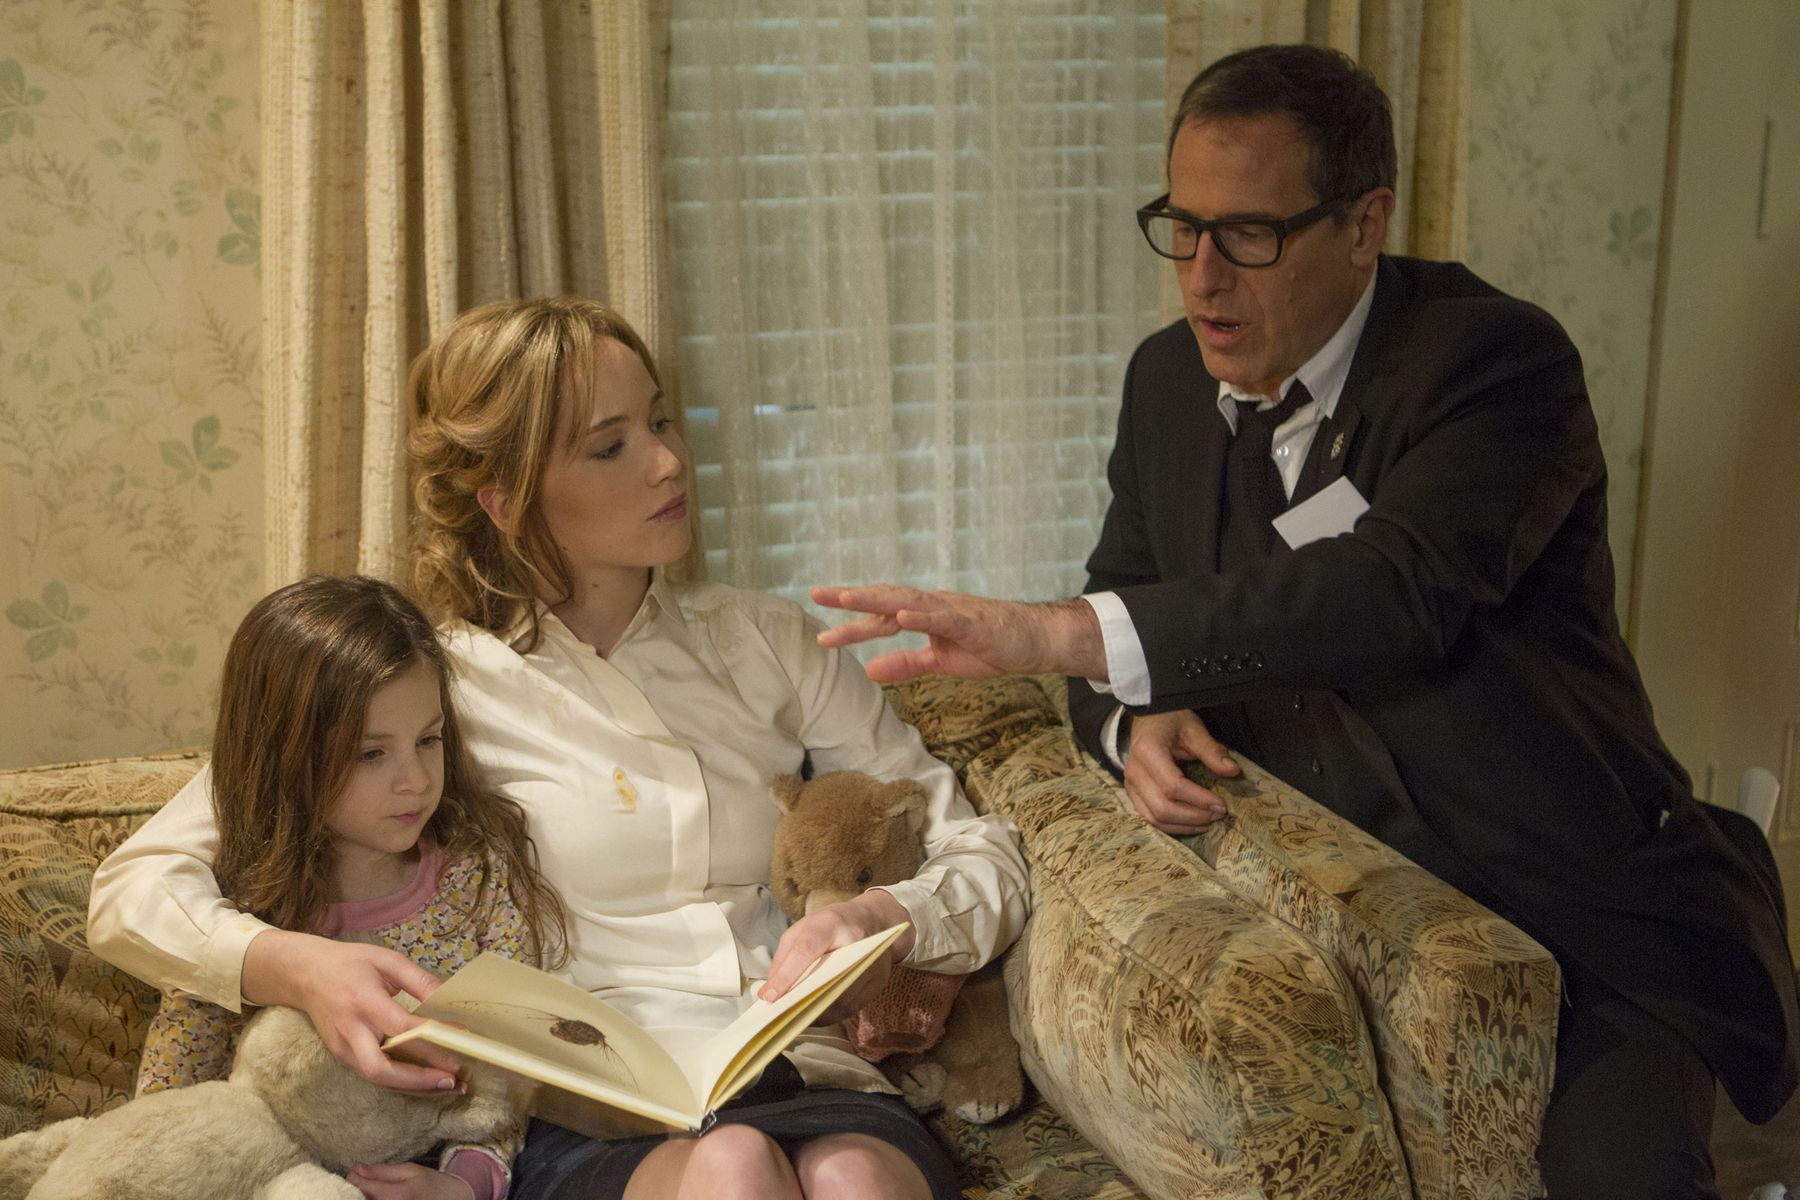 David O. Russell made 'Joy' as a tribute to Jennifer Lawrence